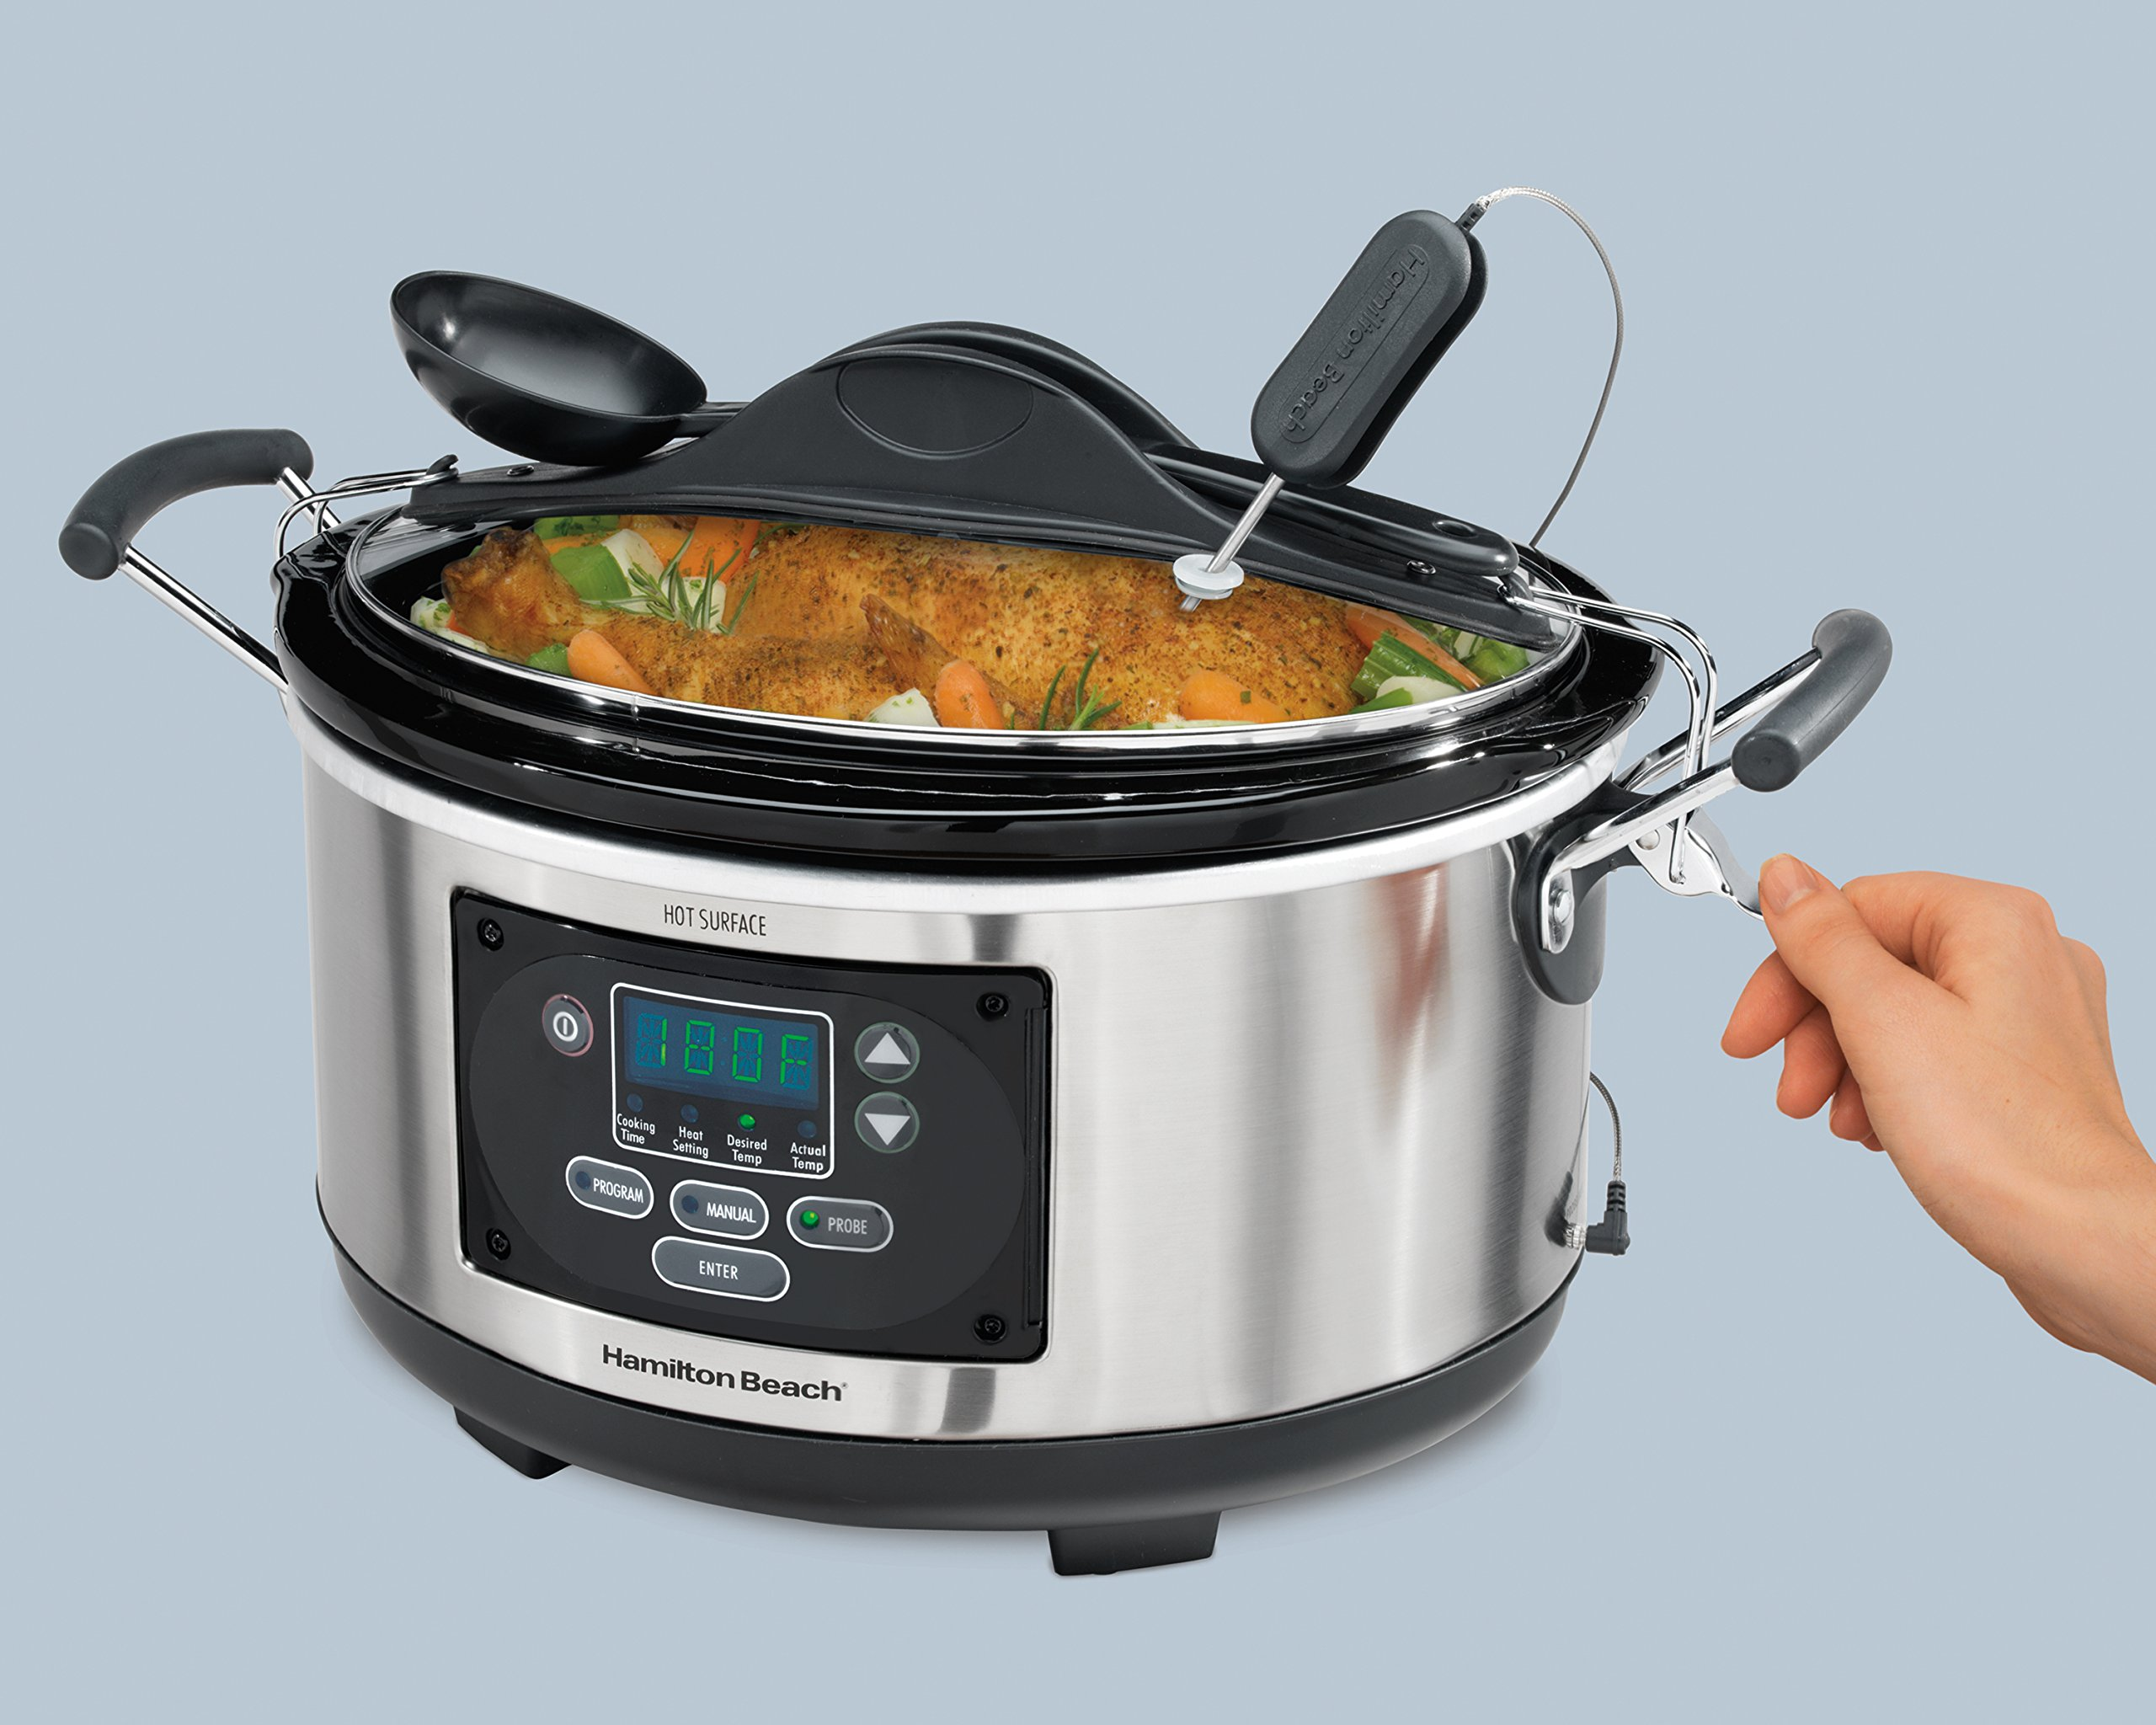 Hamilton Beach (33967A) Slow Cooker With Temperature Probe, 6 Quart, Programmable, Stainless Steel by Hamilton Beach (Image #5)